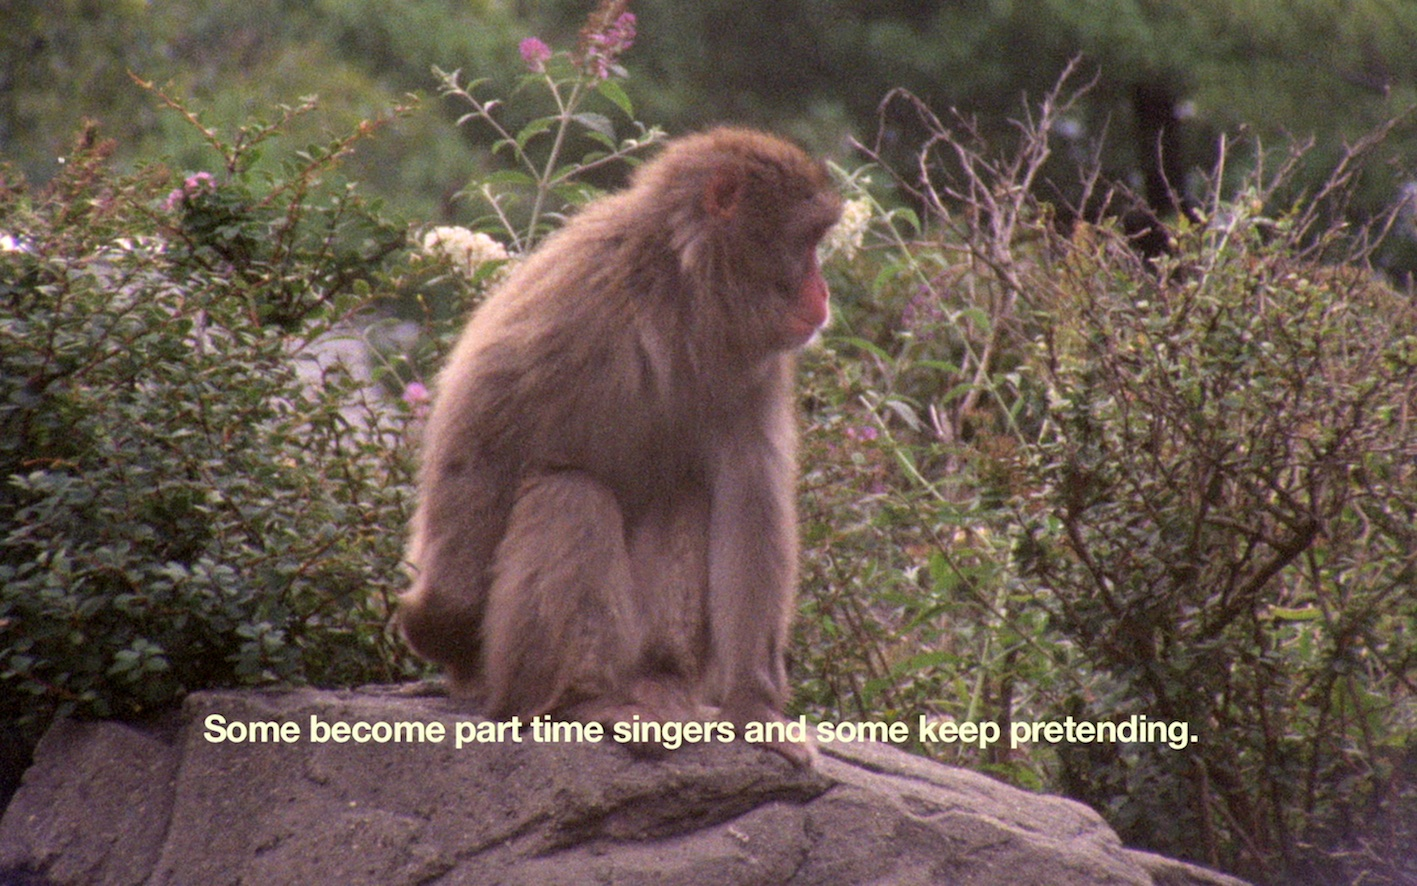 The Everyday Ritual of SolitudeHatching Monkey, 2014, Super 16 mm film transferred to Full HD, 13 min 22 sec